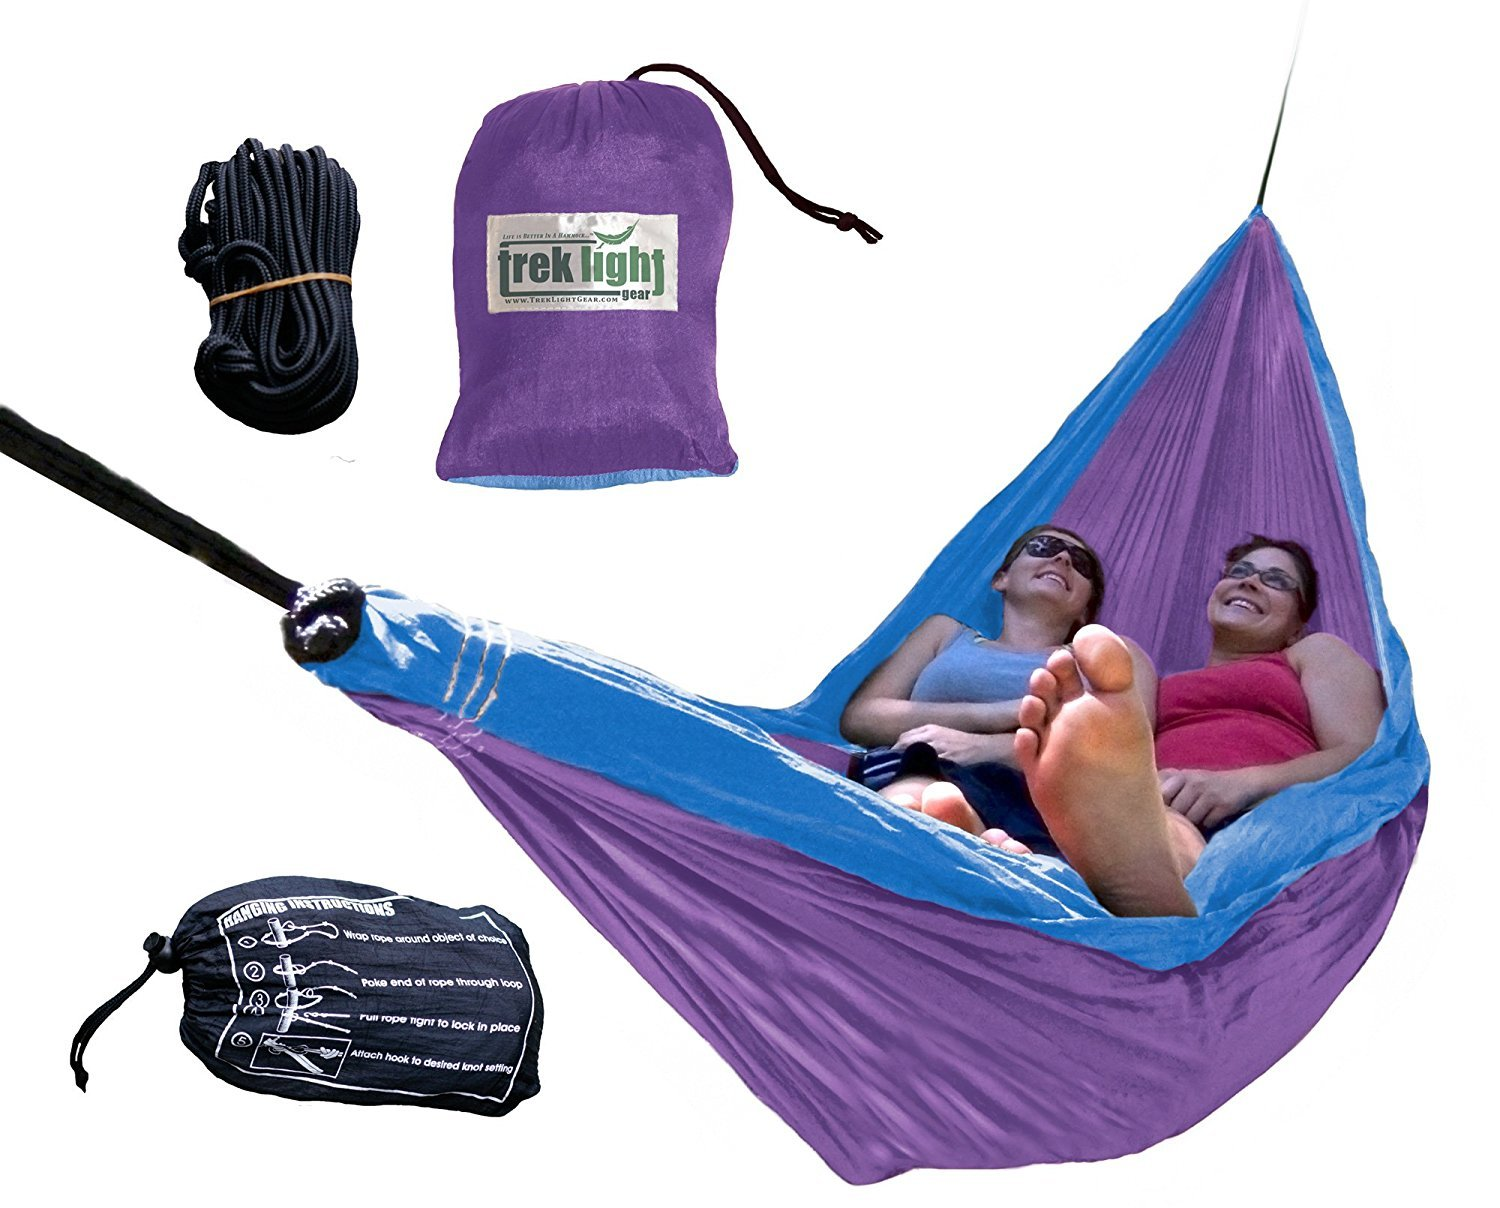 Trek Light Gear Double Hammock with Rope Kit - The Original Brand of Best-Selling Lightweight Nylon Hammocks - Use for All Camping Hiking and Outdoor Adventures {Purple/Blue} [並行輸入品] B074DG79KC